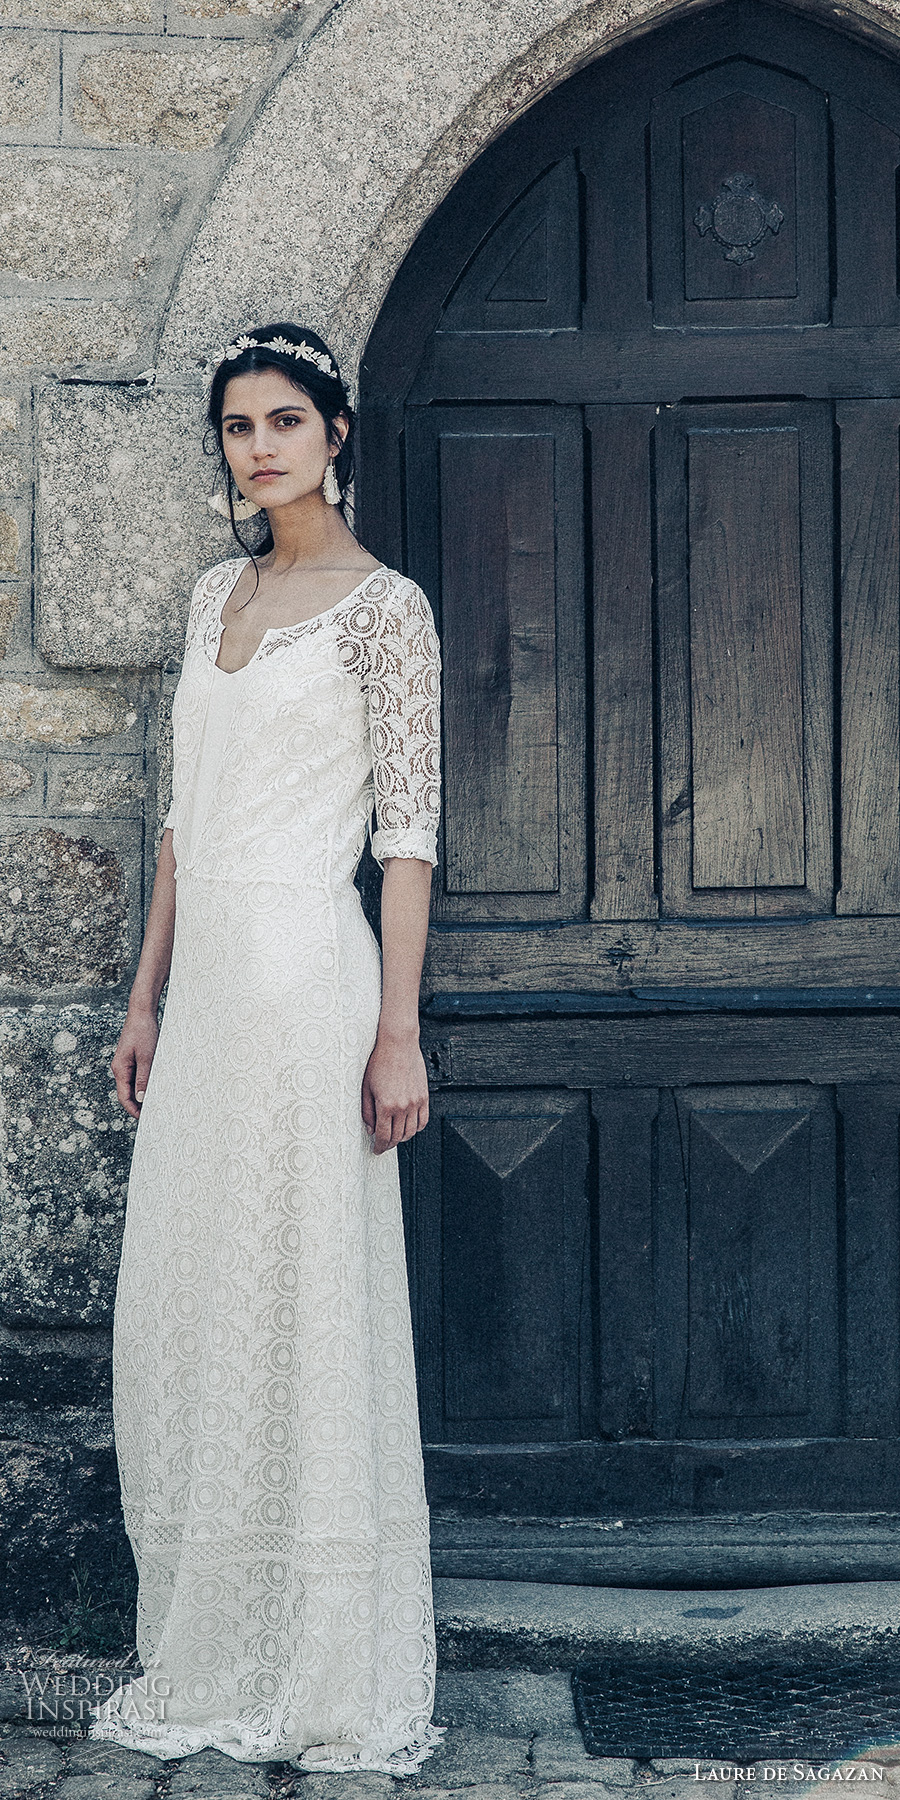 laure de sagazan 2017 bridal half sleeves plunging v neck full lace embellishment overdress spagetti strap scoop neck column wedding dress open v back (drieu cleves) mv